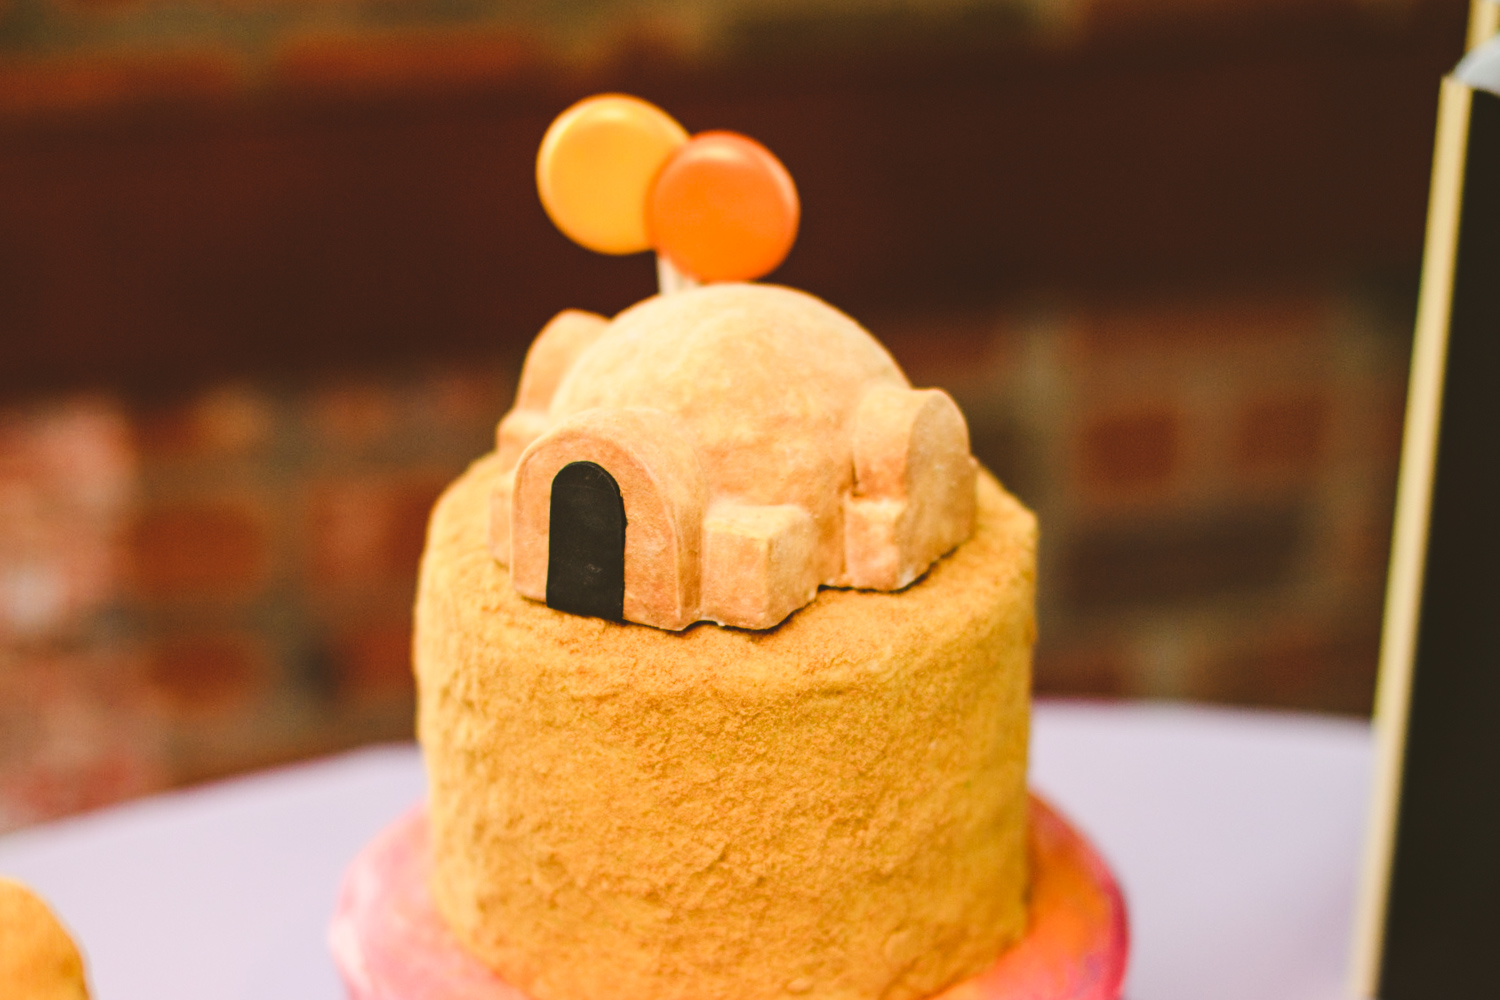 028 - Tatooine binary sunset wedding cake.jpg